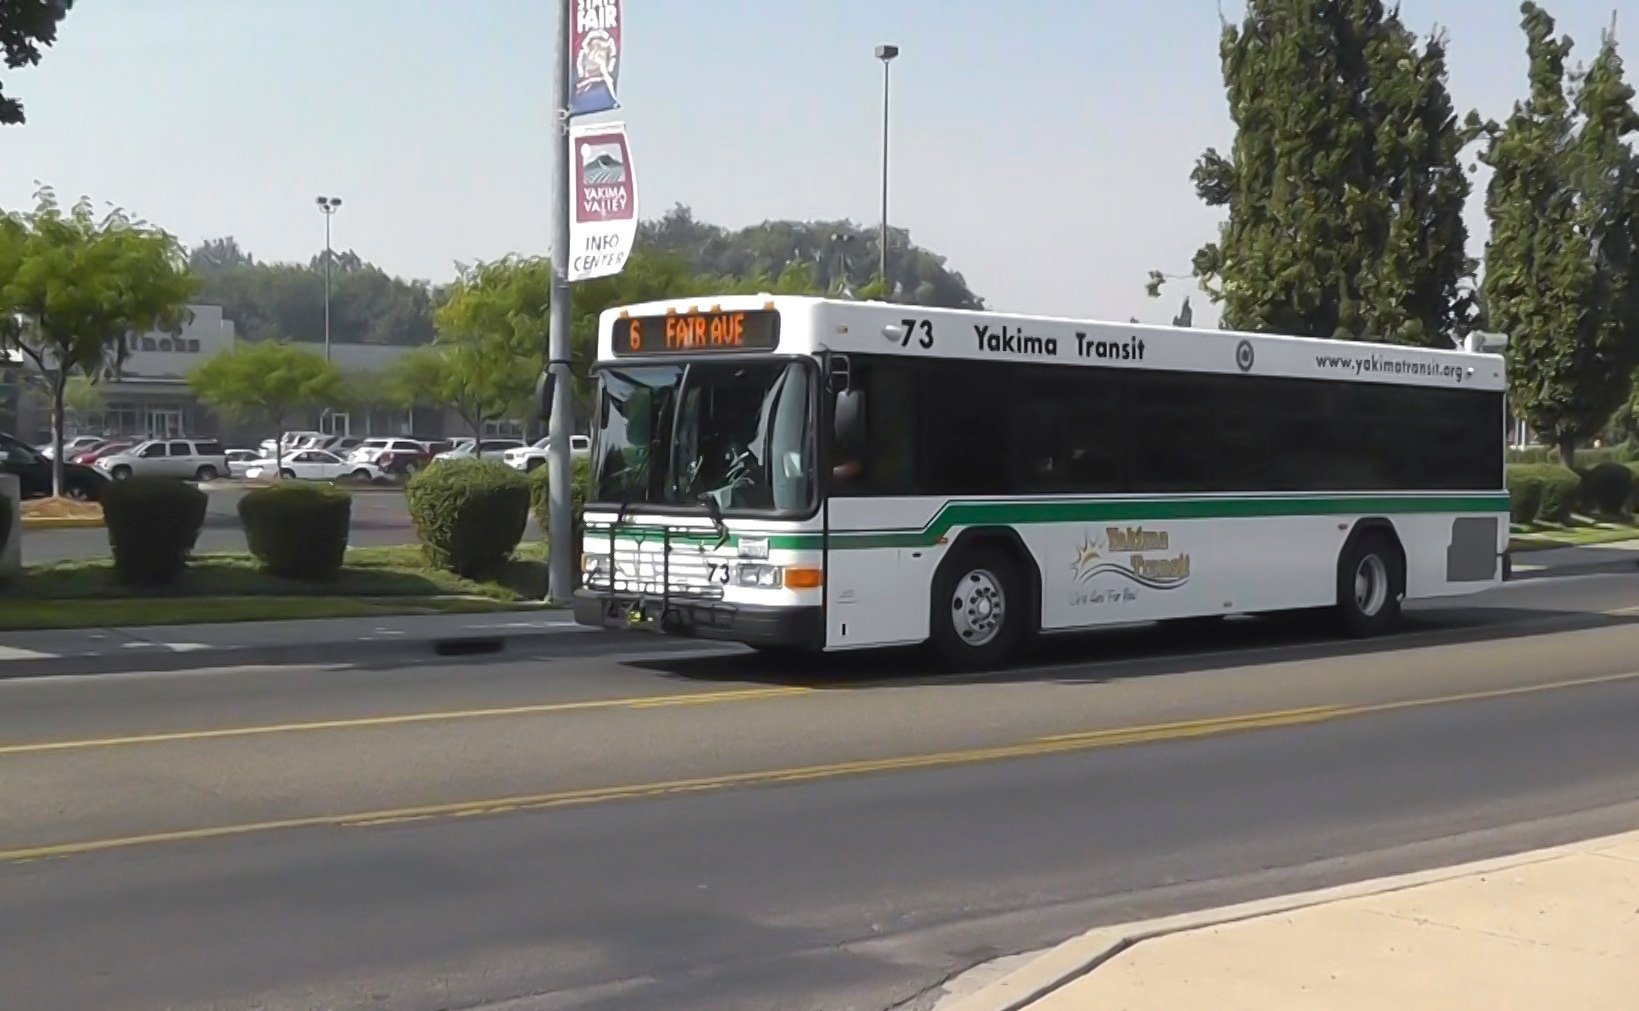 Yakima Transit Providing Free Shuttle Bus Service To The Fair